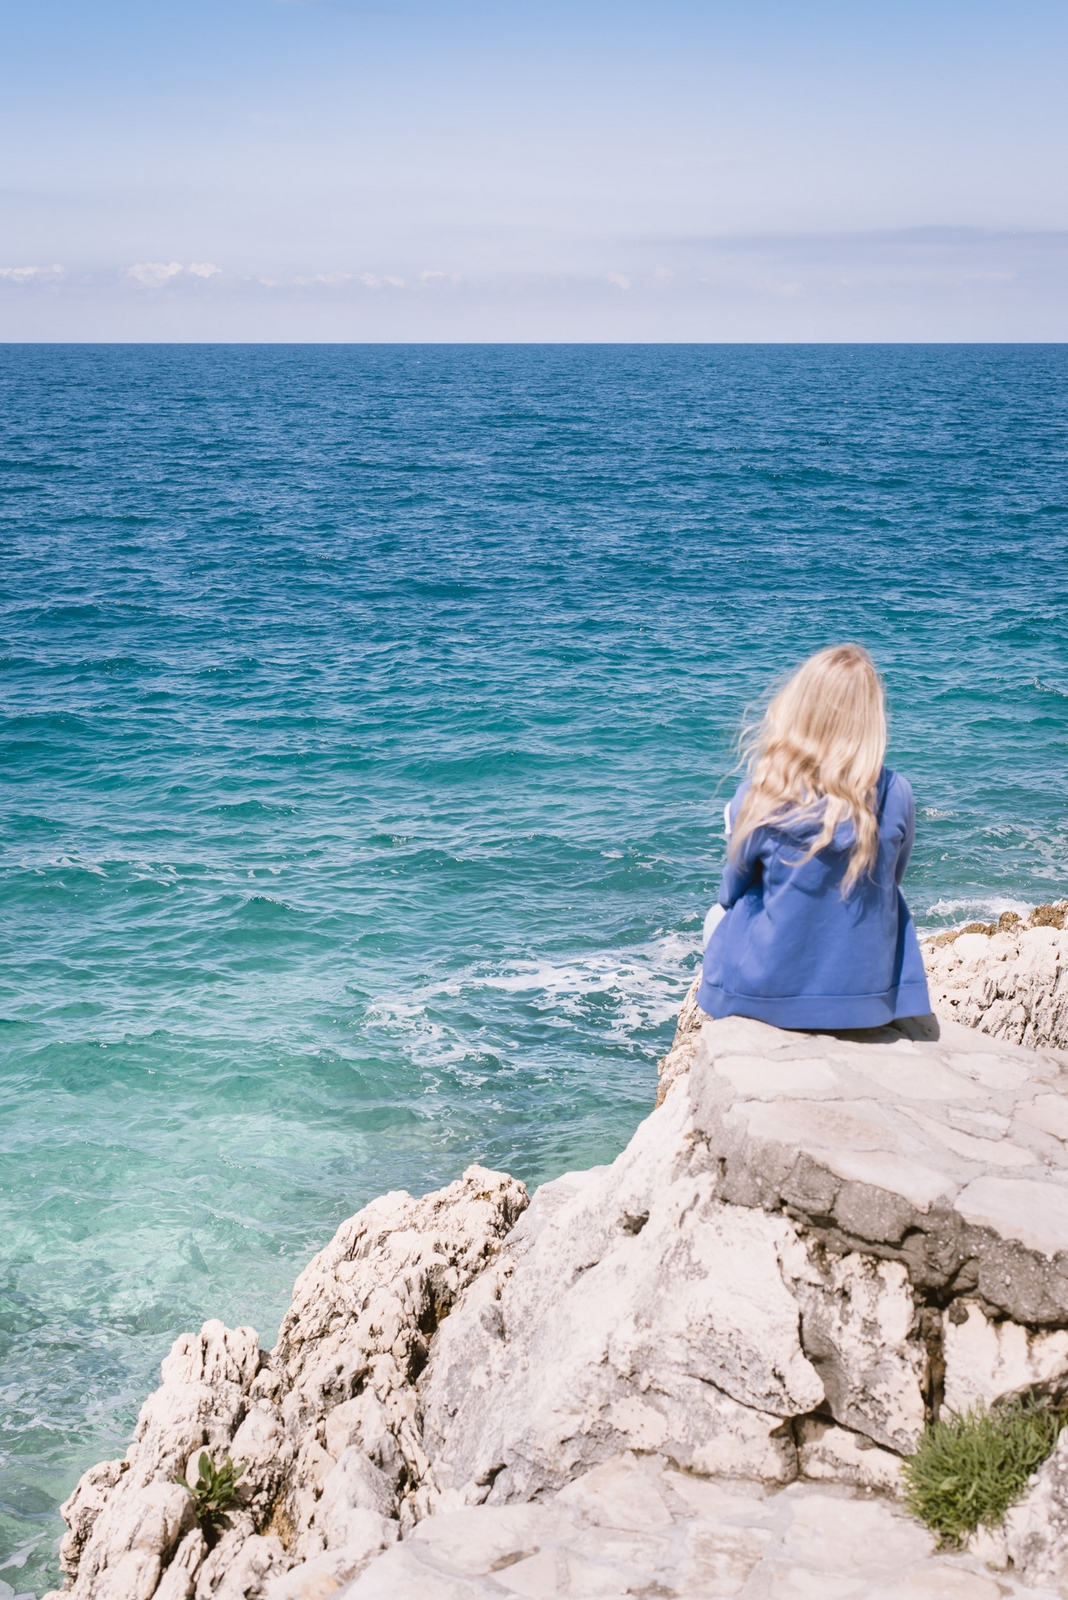 Adriatic sea seen from the old town of Rovinj, Istria - from travel blog http://Epepa.eu